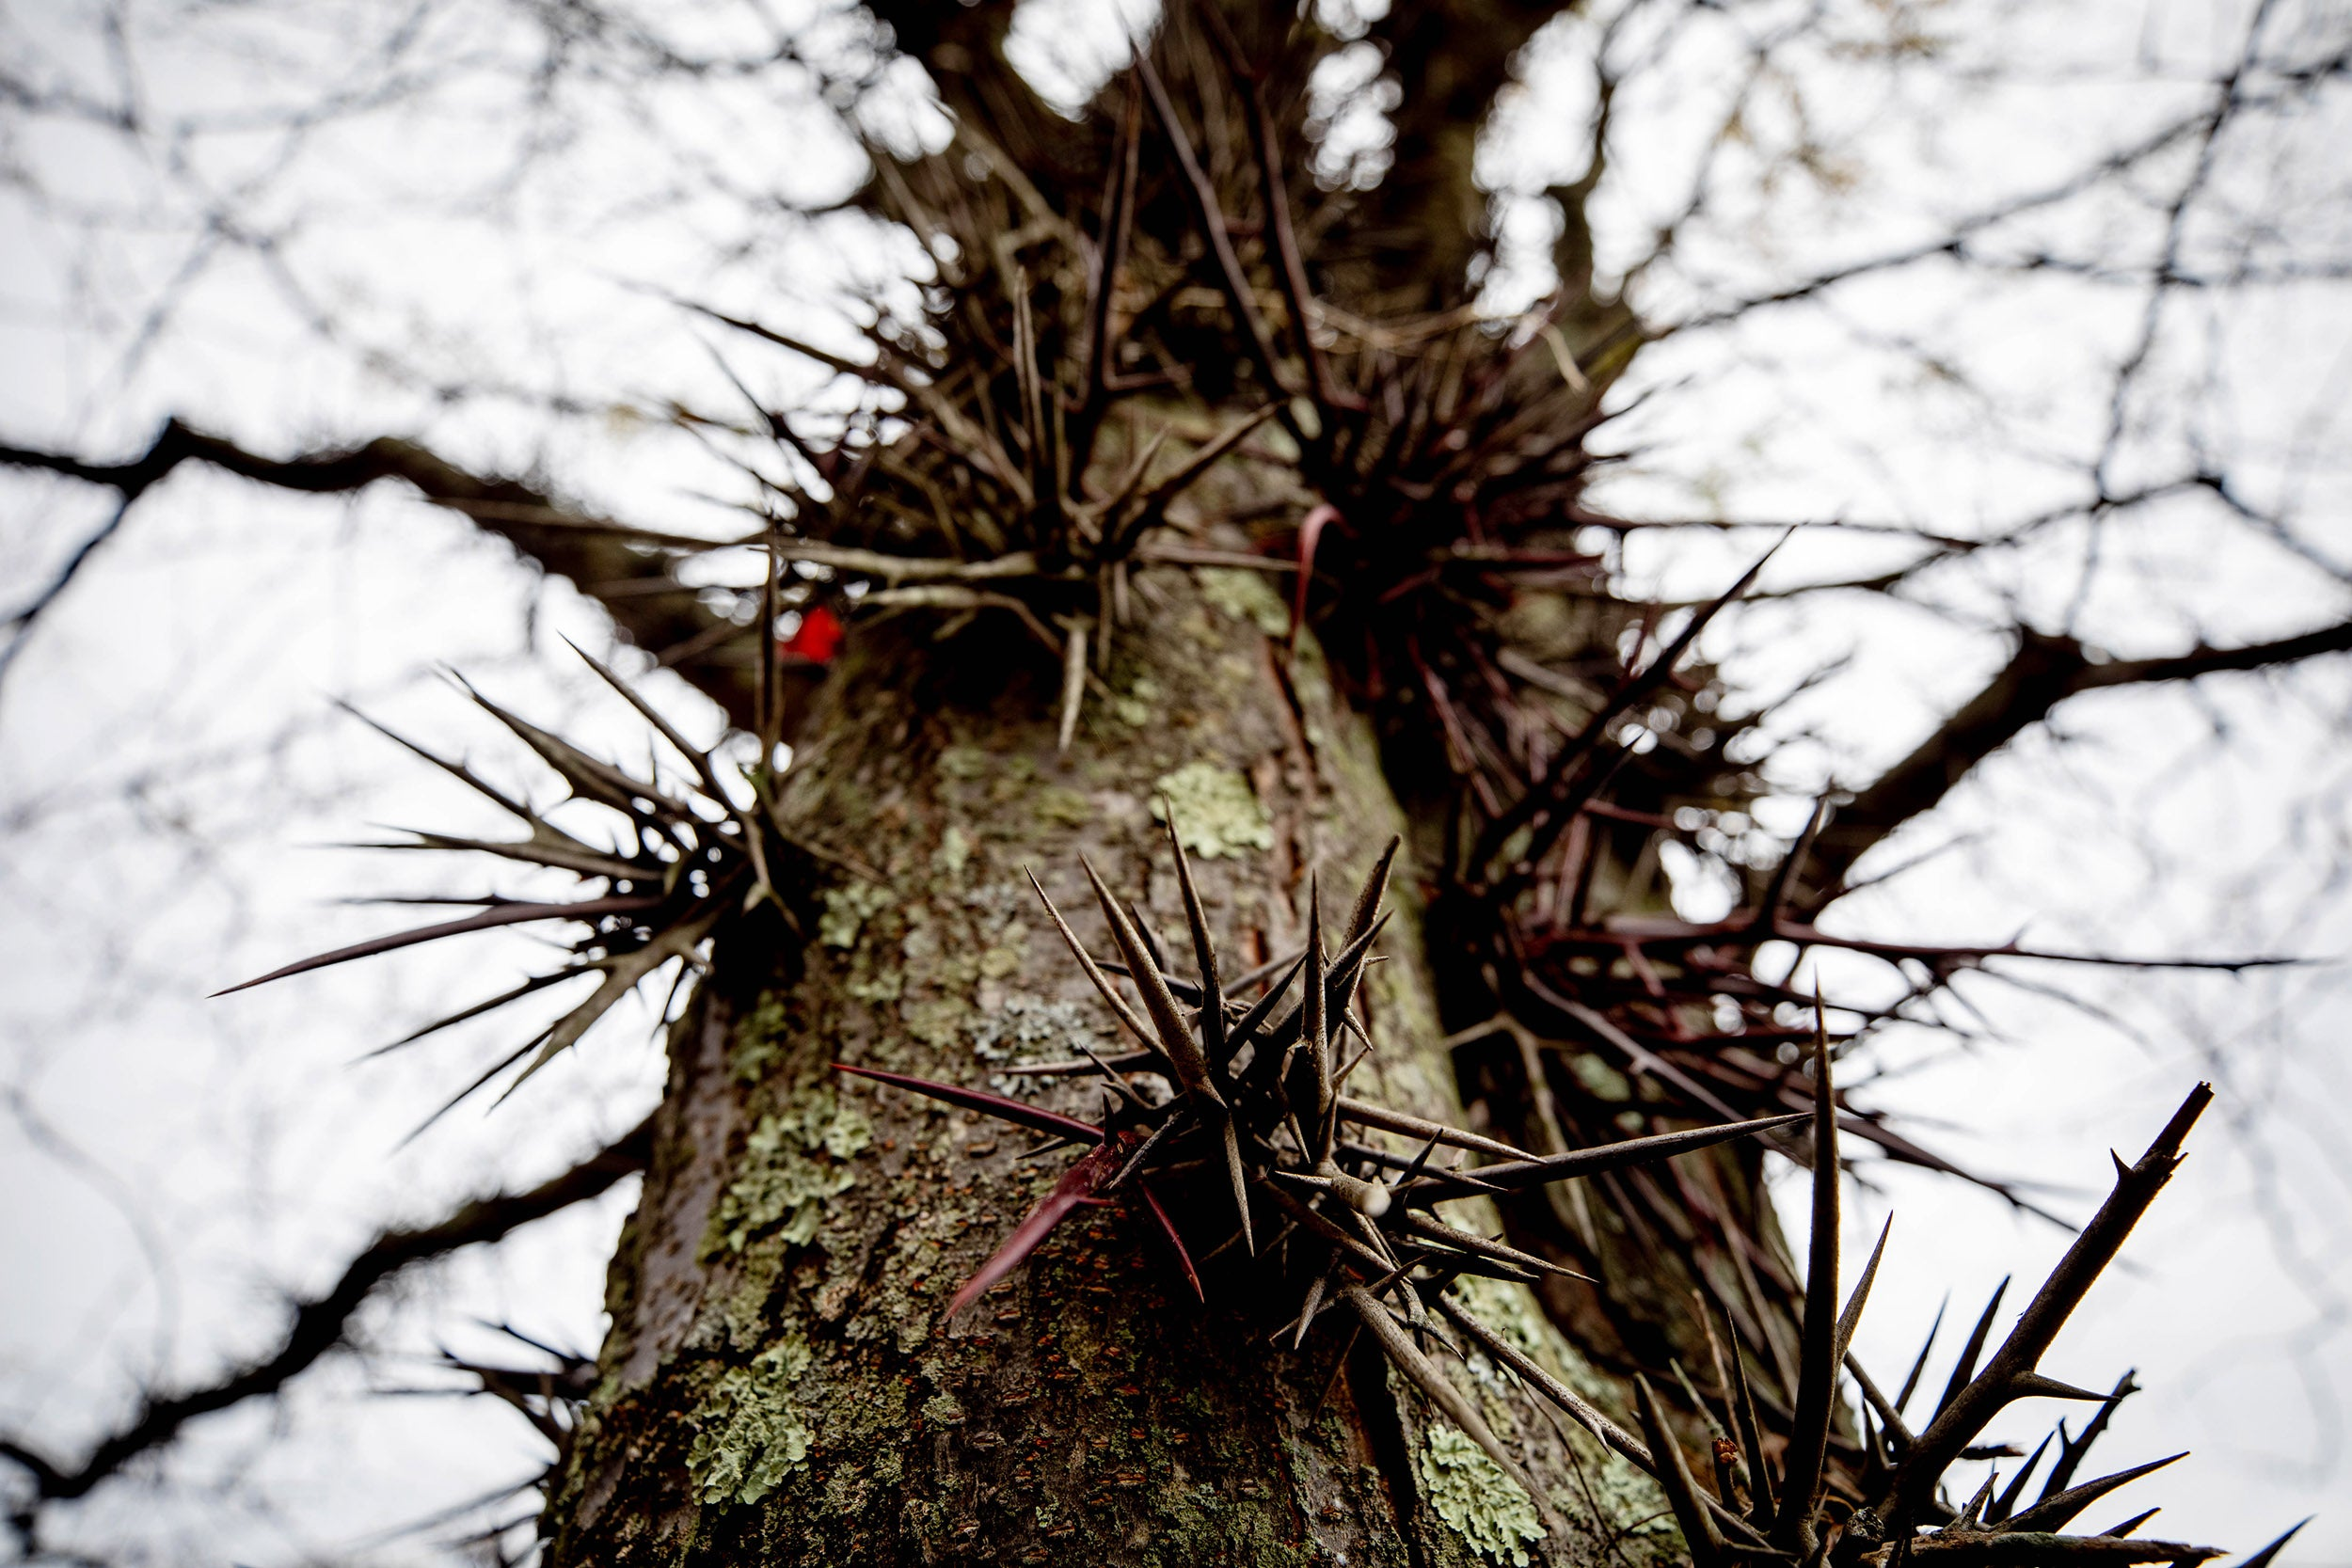 Thorns grow from a honey locust tree.